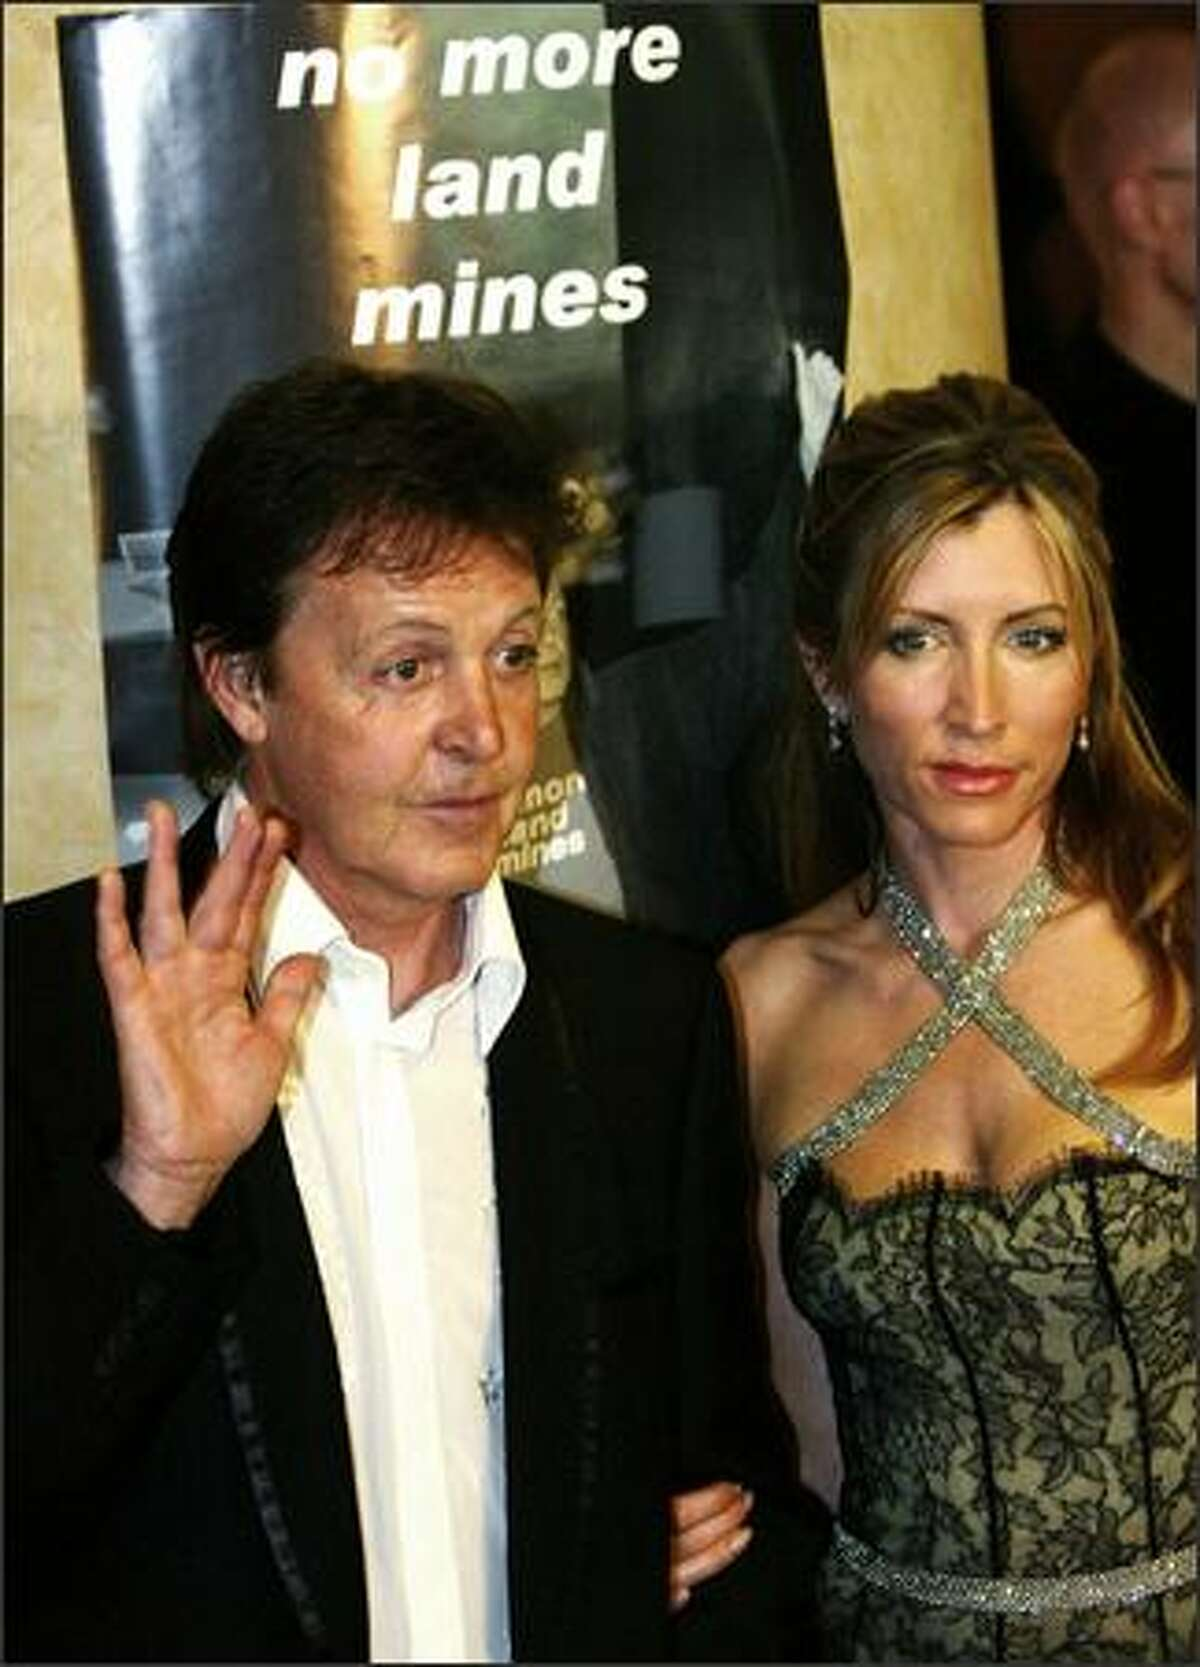 The Associated Press reports that Heather Mills McCartney (seen here last year with her soon to be ex, Sir Paul) said Tuesday that she plans to sue newspapers that have been digging into her past. The News of the World has run stories about Mills McCartney spending nights with wealthy men when she was in her 20s. For money, not love.